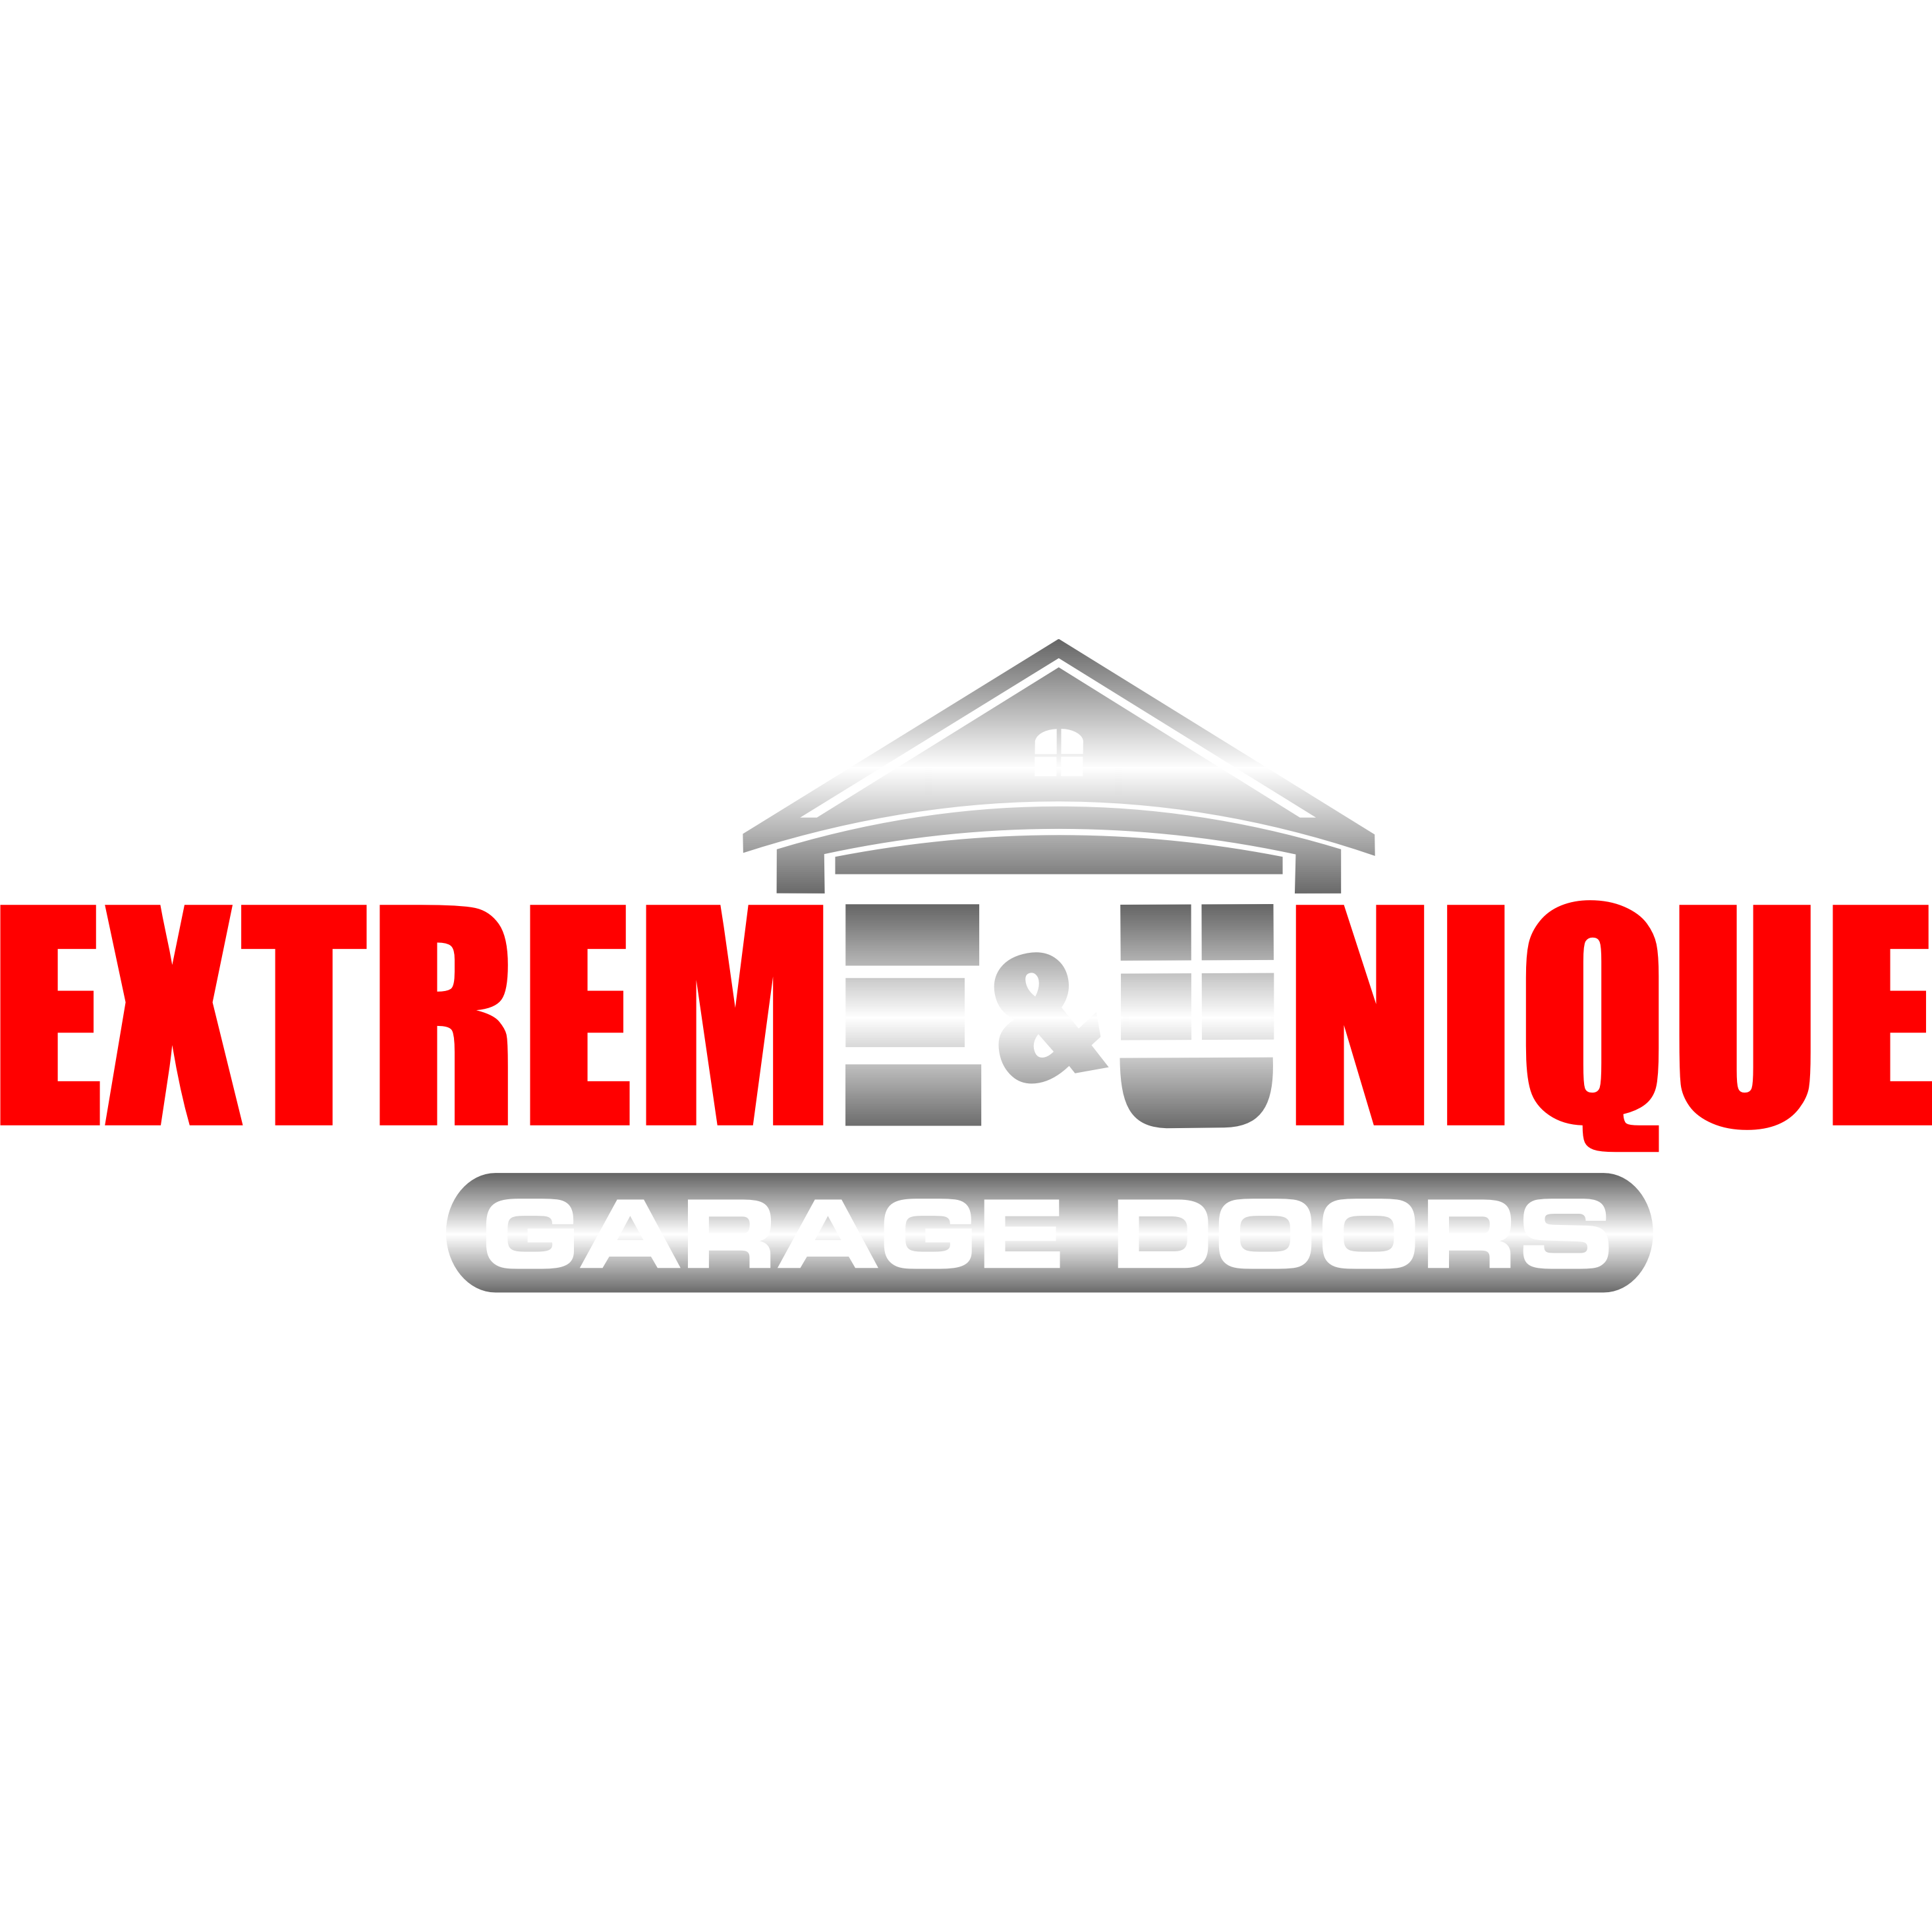 Extreme & Unique Garage Doors | Garage Door Repair Tucson